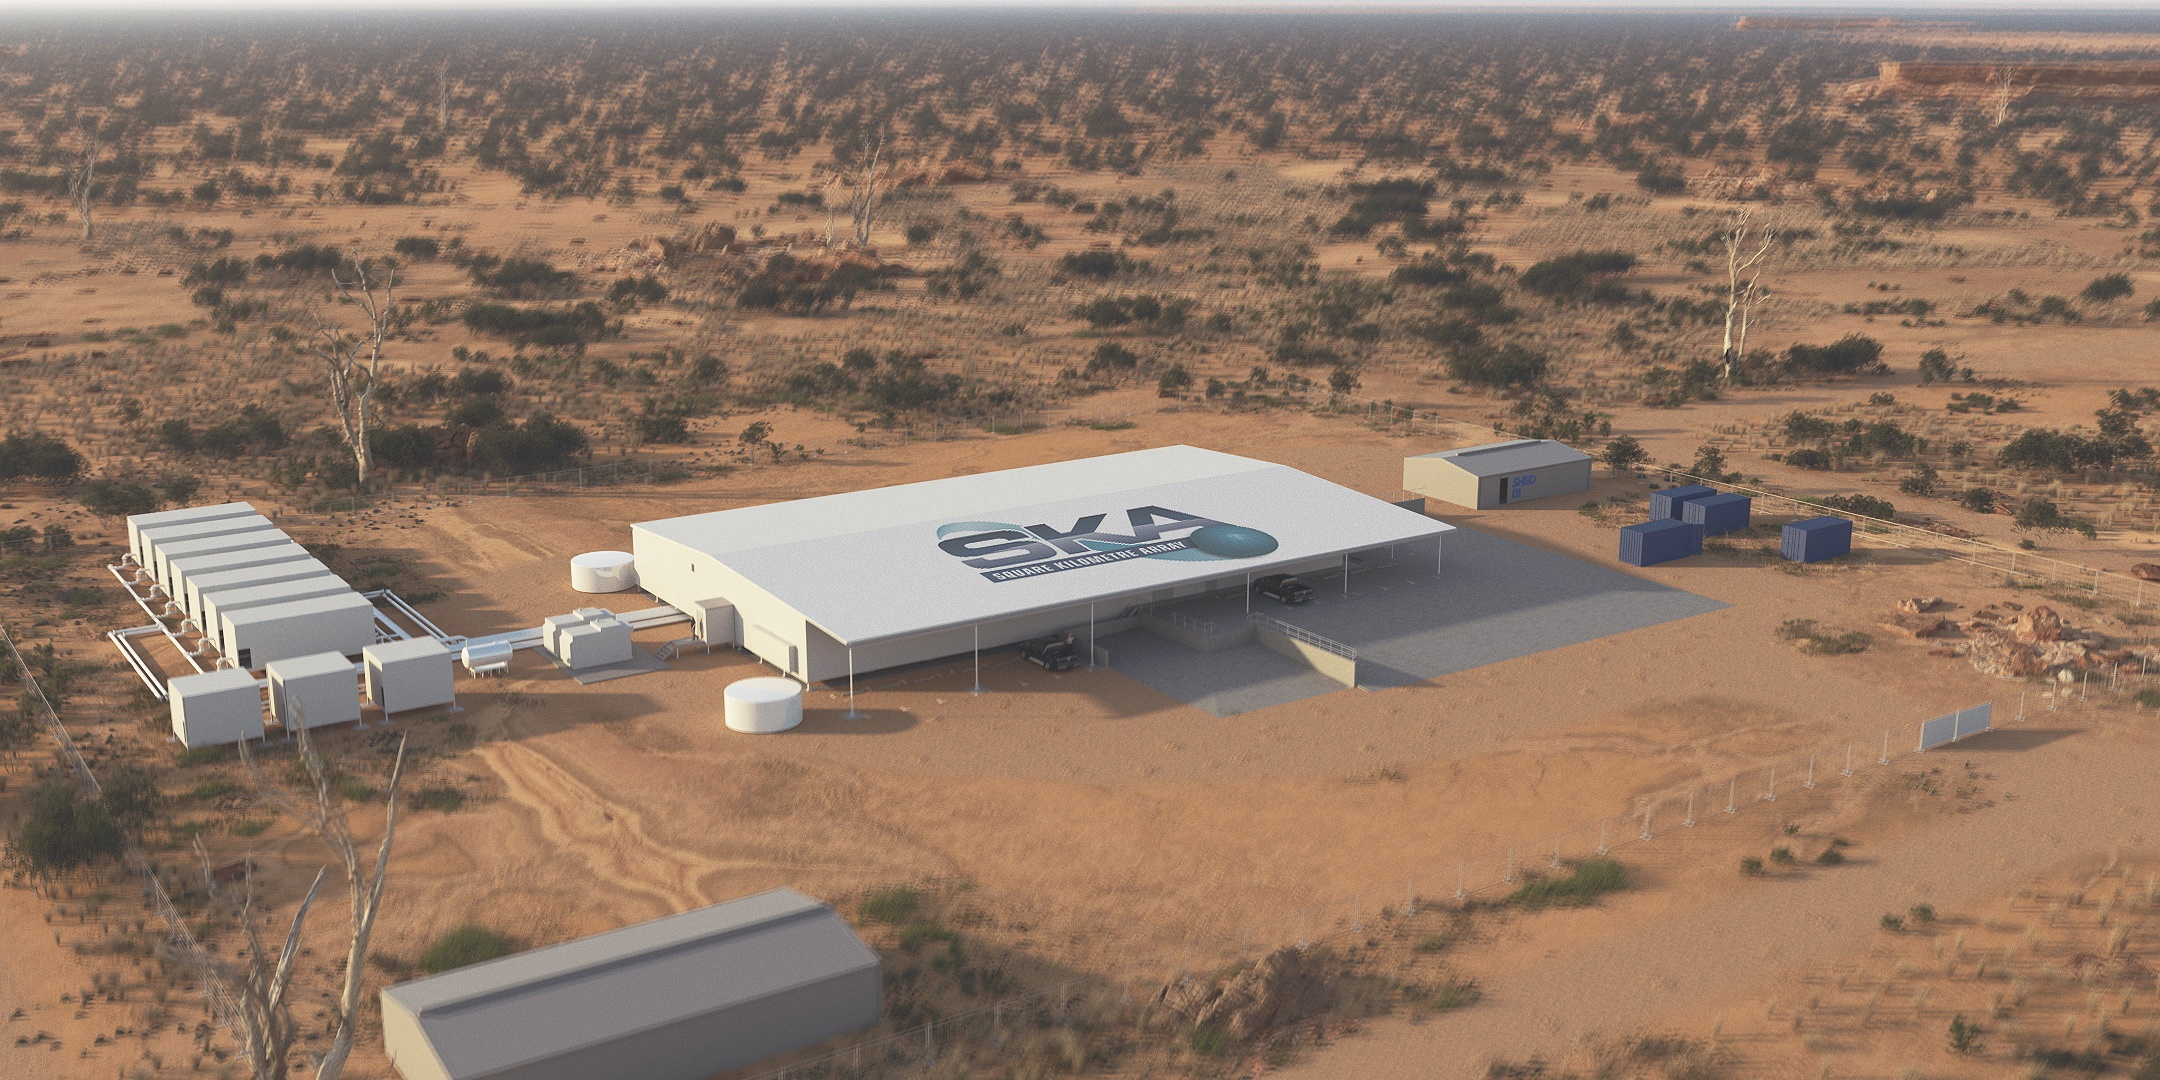 Artist's impression of the buildings of the supercomputing facility for the future Square Kilometre Array.